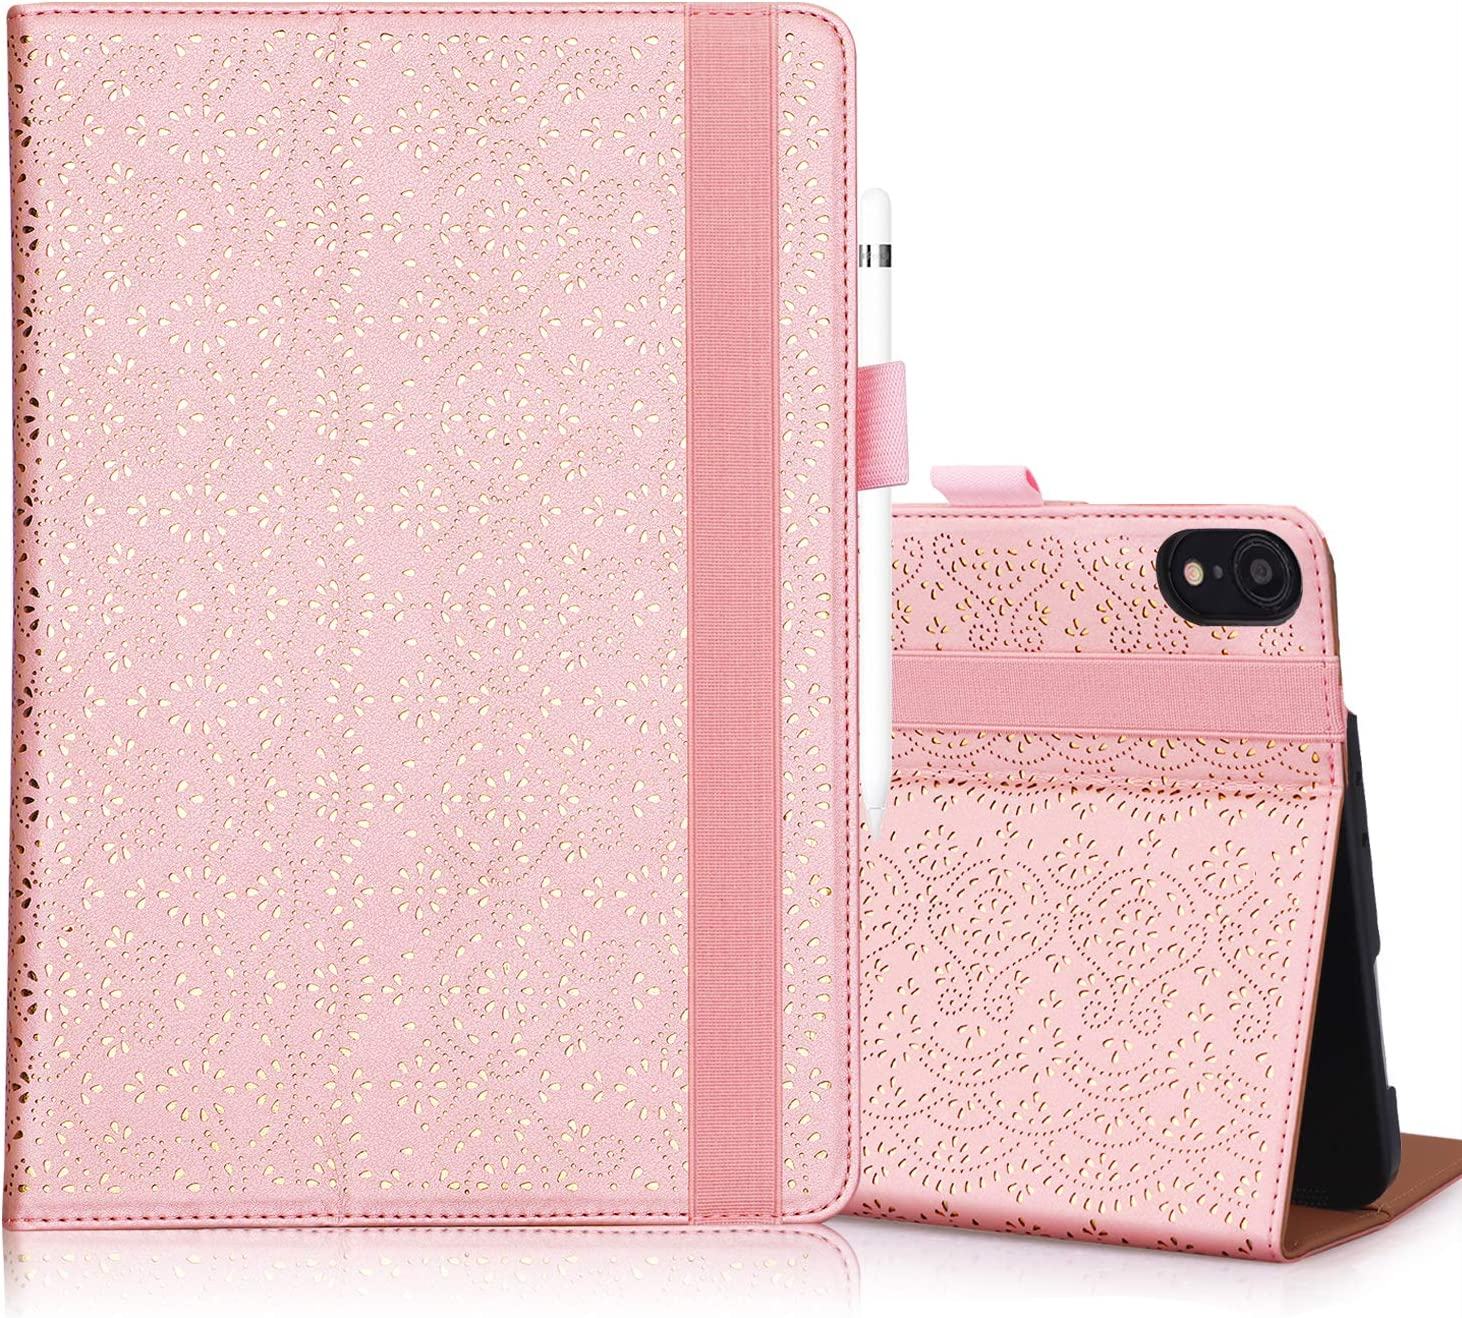 "WWW iPad Pro 12.9"" Case 2018 3rd Generation,[Support Apple Pencil Charging][Luxury Laser Flower] PU Leather Case with Auto Wake/Sleep and Multiple Viewing Angles for iPad Pro 12.9"" 3rd Gen 2018 Pink"